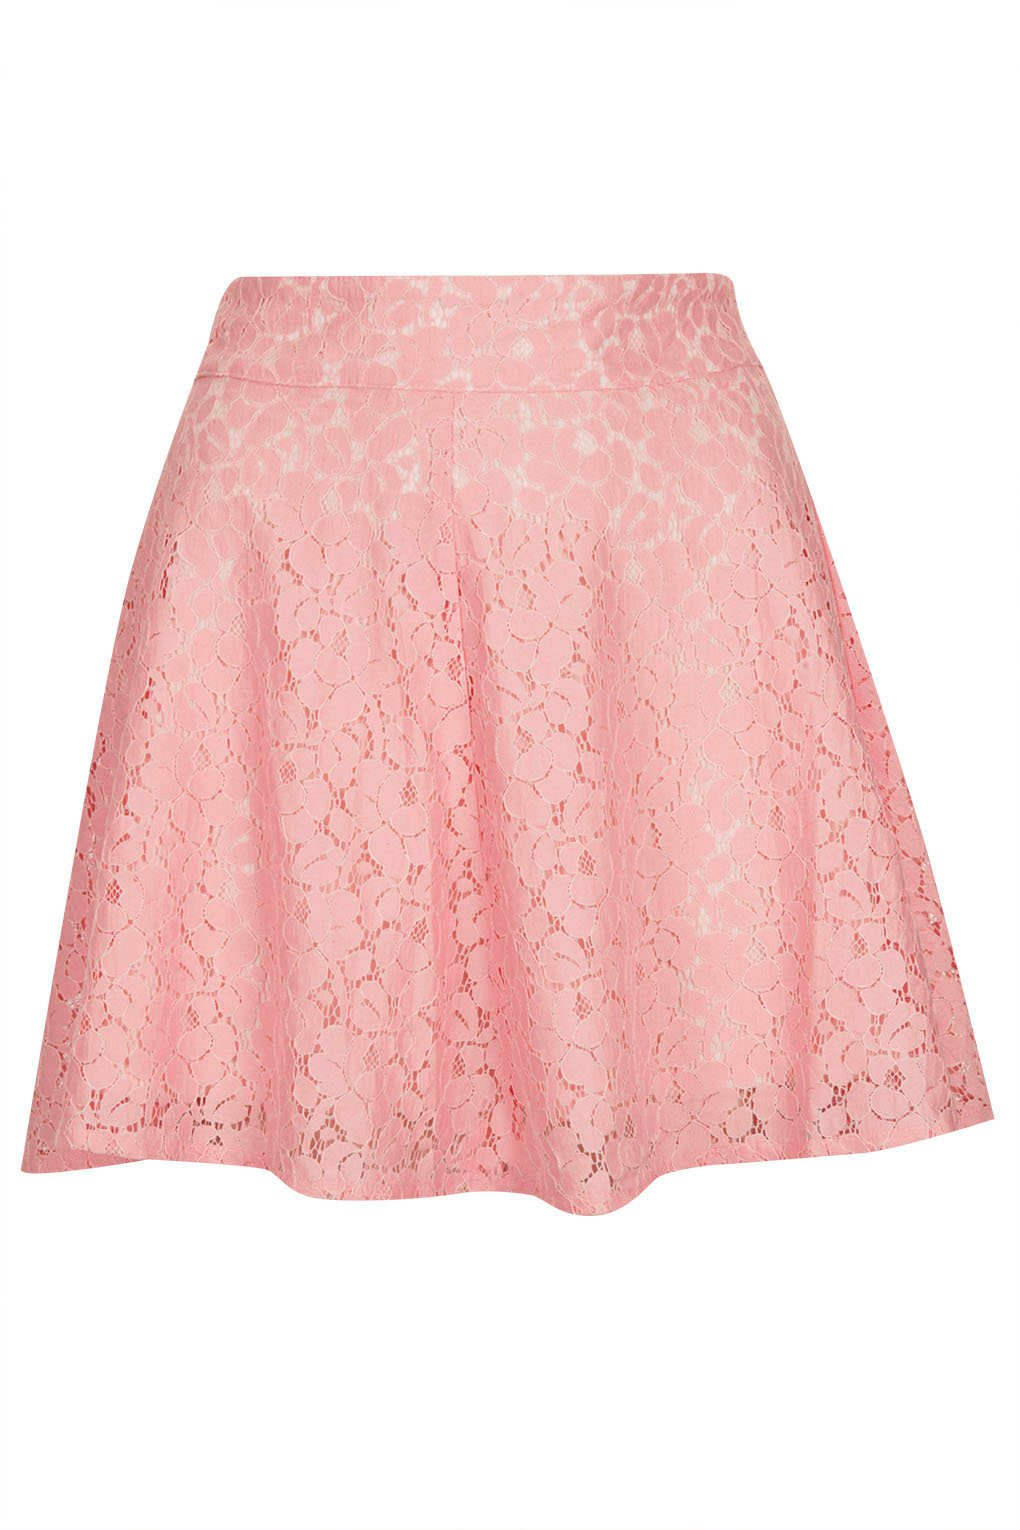 Topshop Pink High Waist Lace Skater Skirt in Pink | Lyst